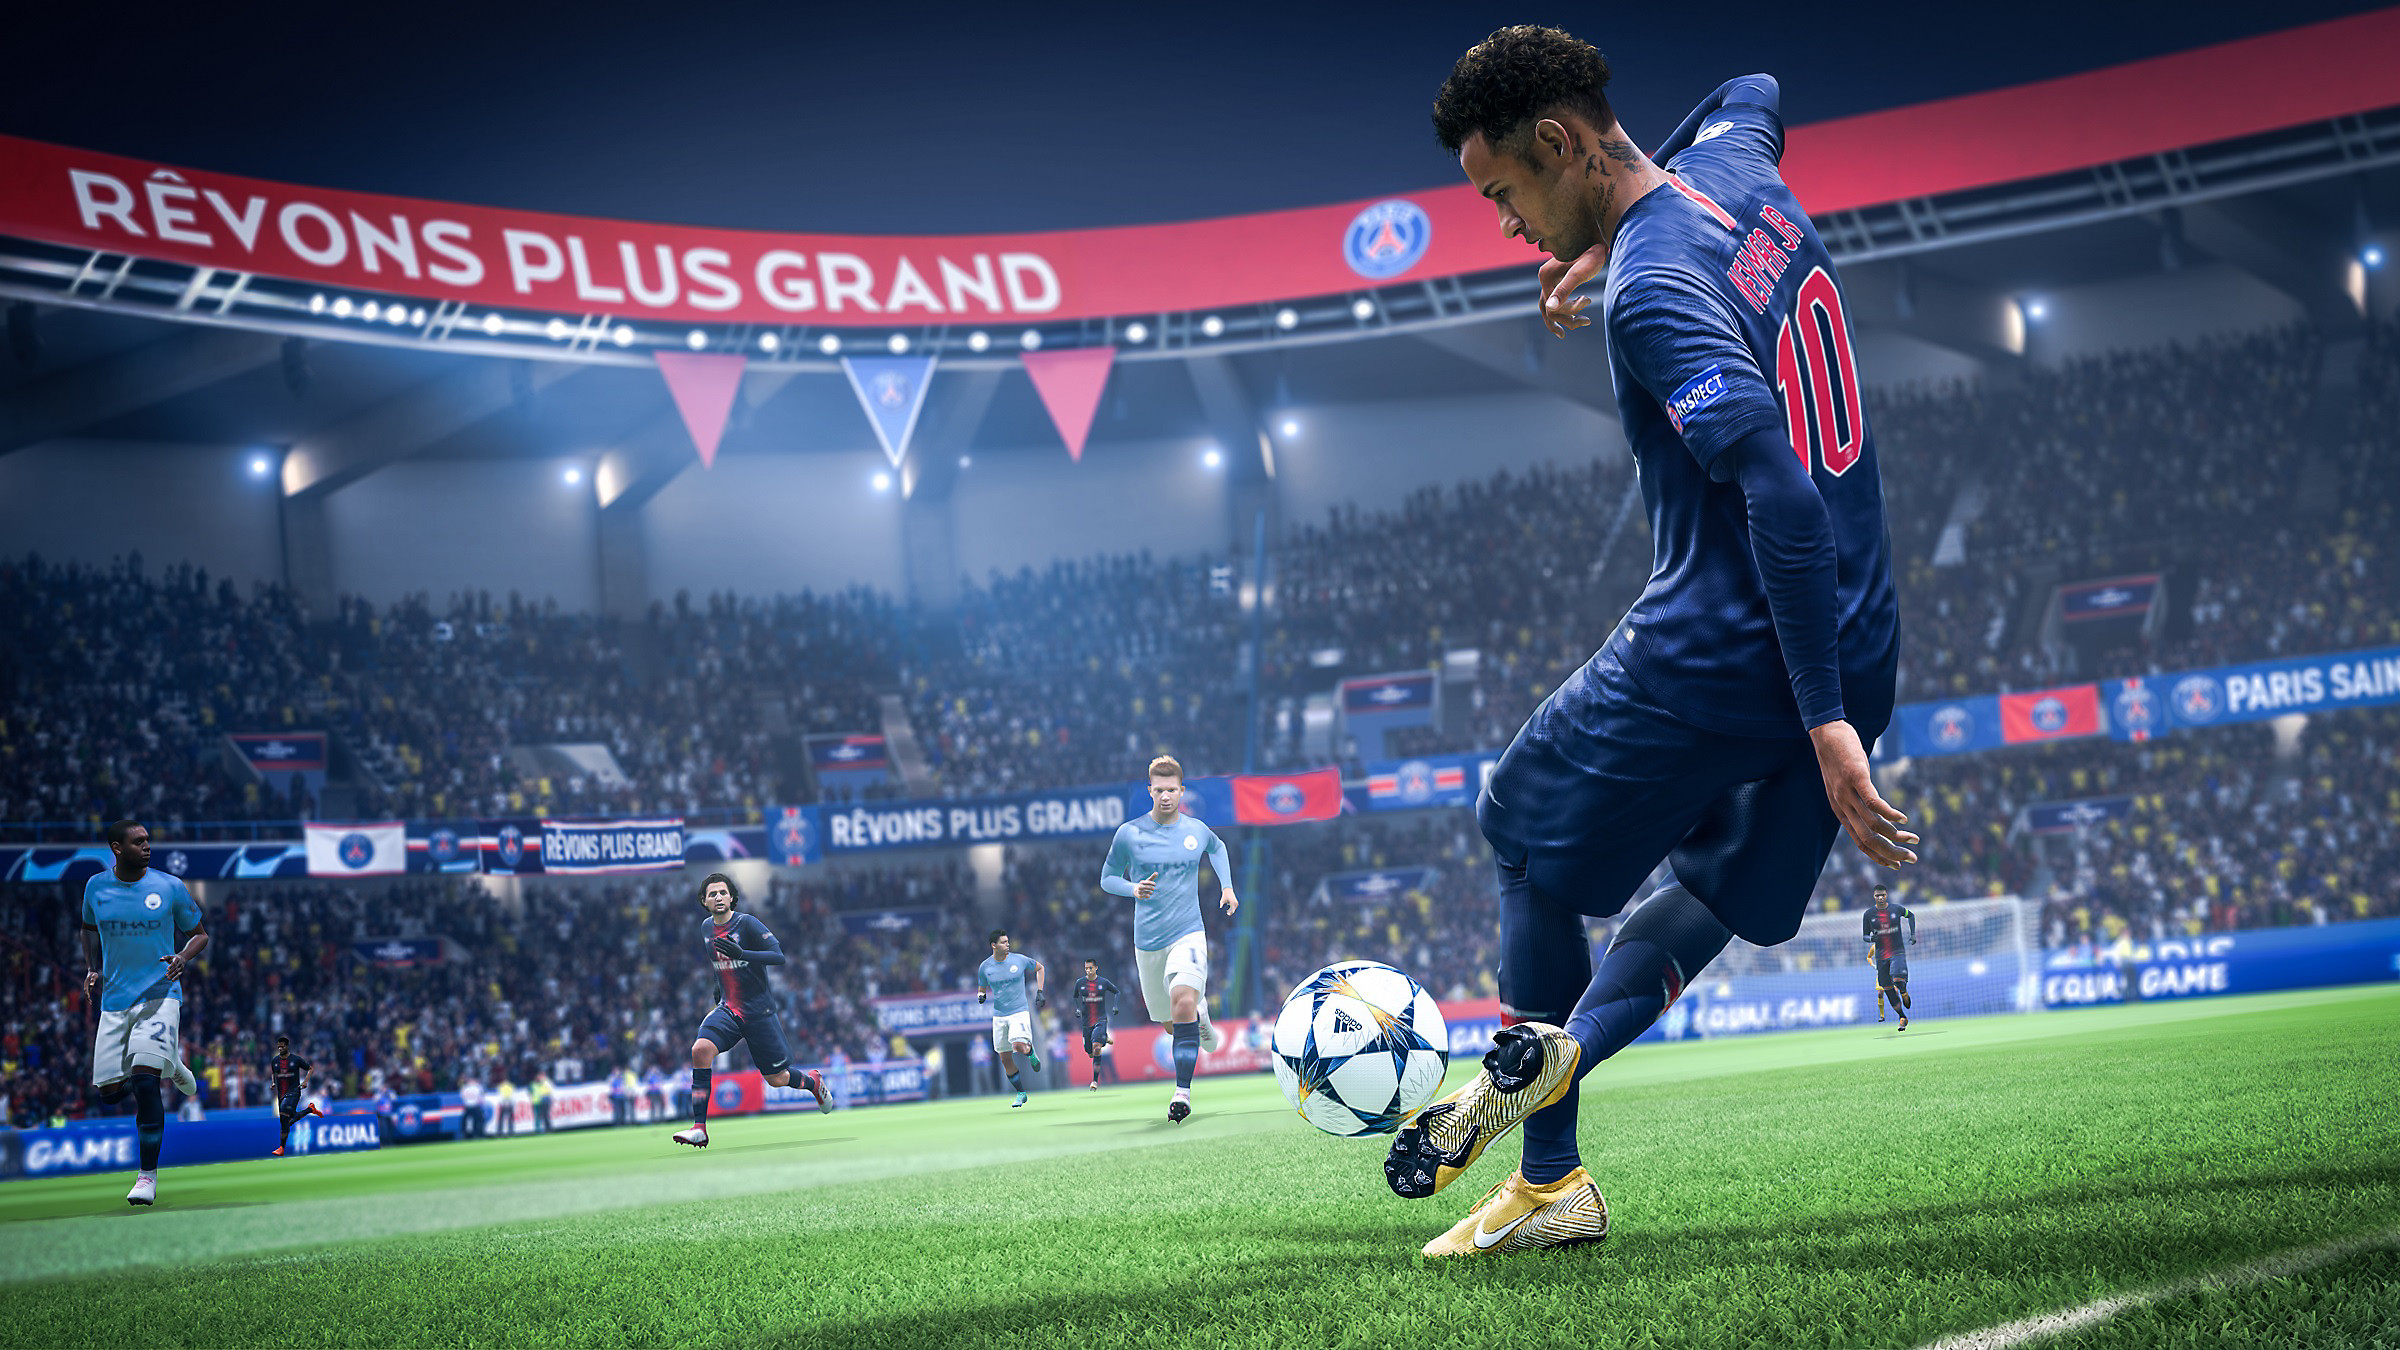 FIFA 19 action image - Neymar on the pitch